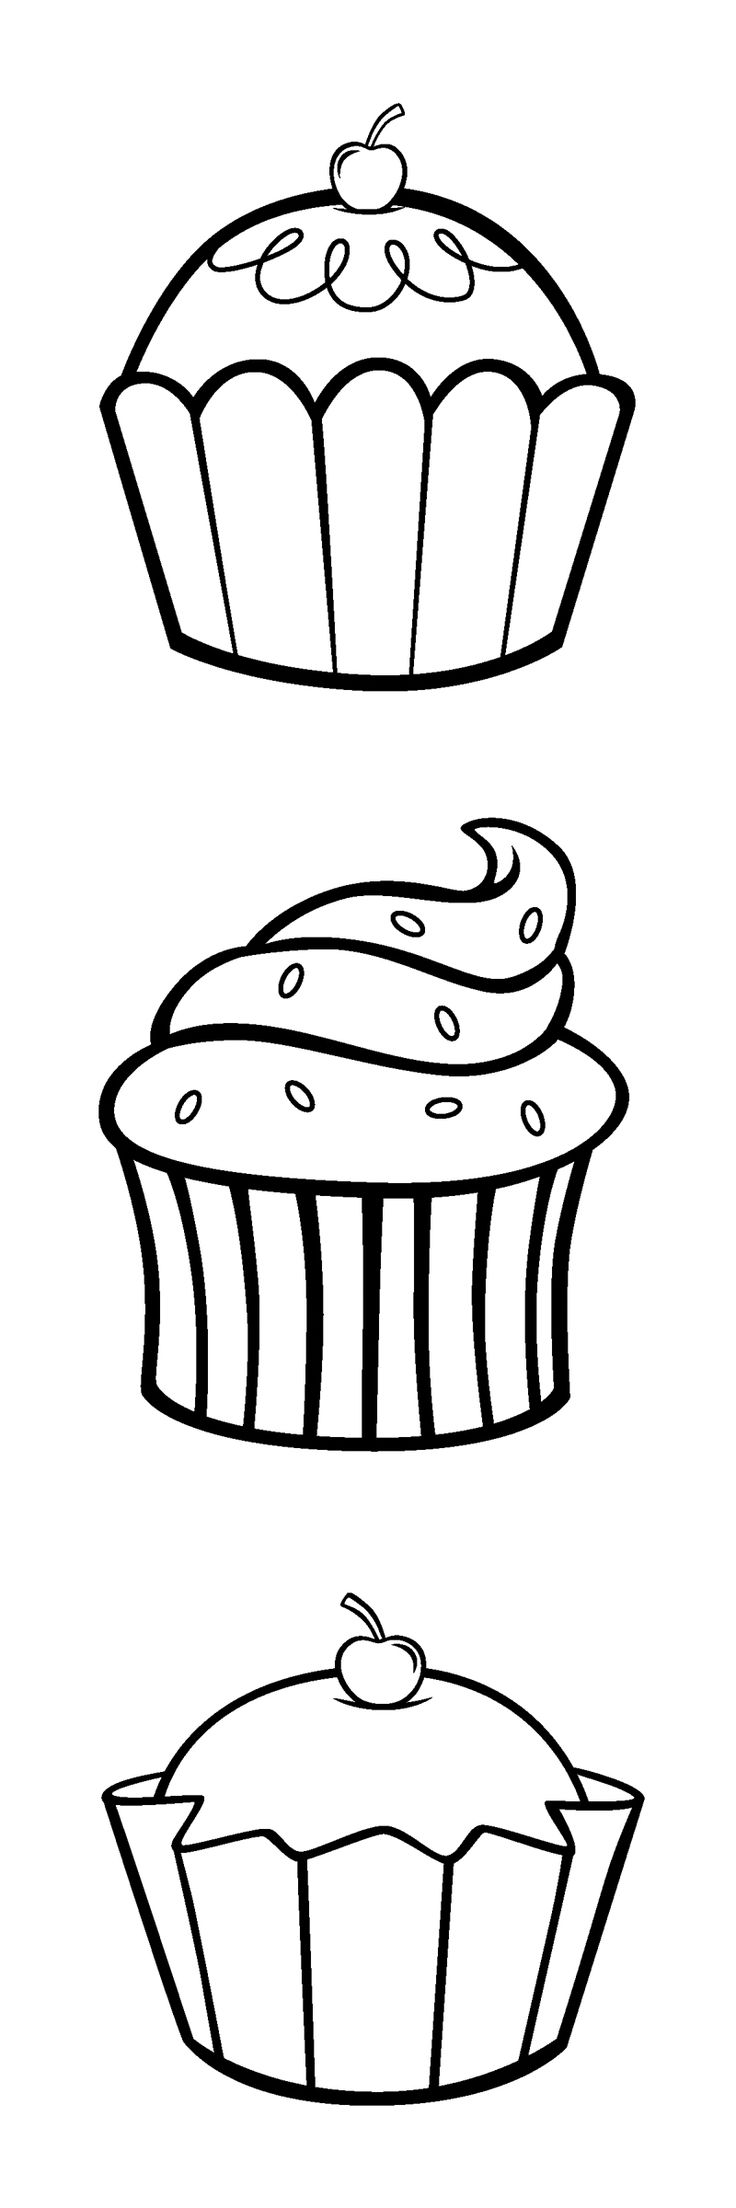 if you can, print this pic of cupcakes cuz their easy and fun to colour or draw at all ages.